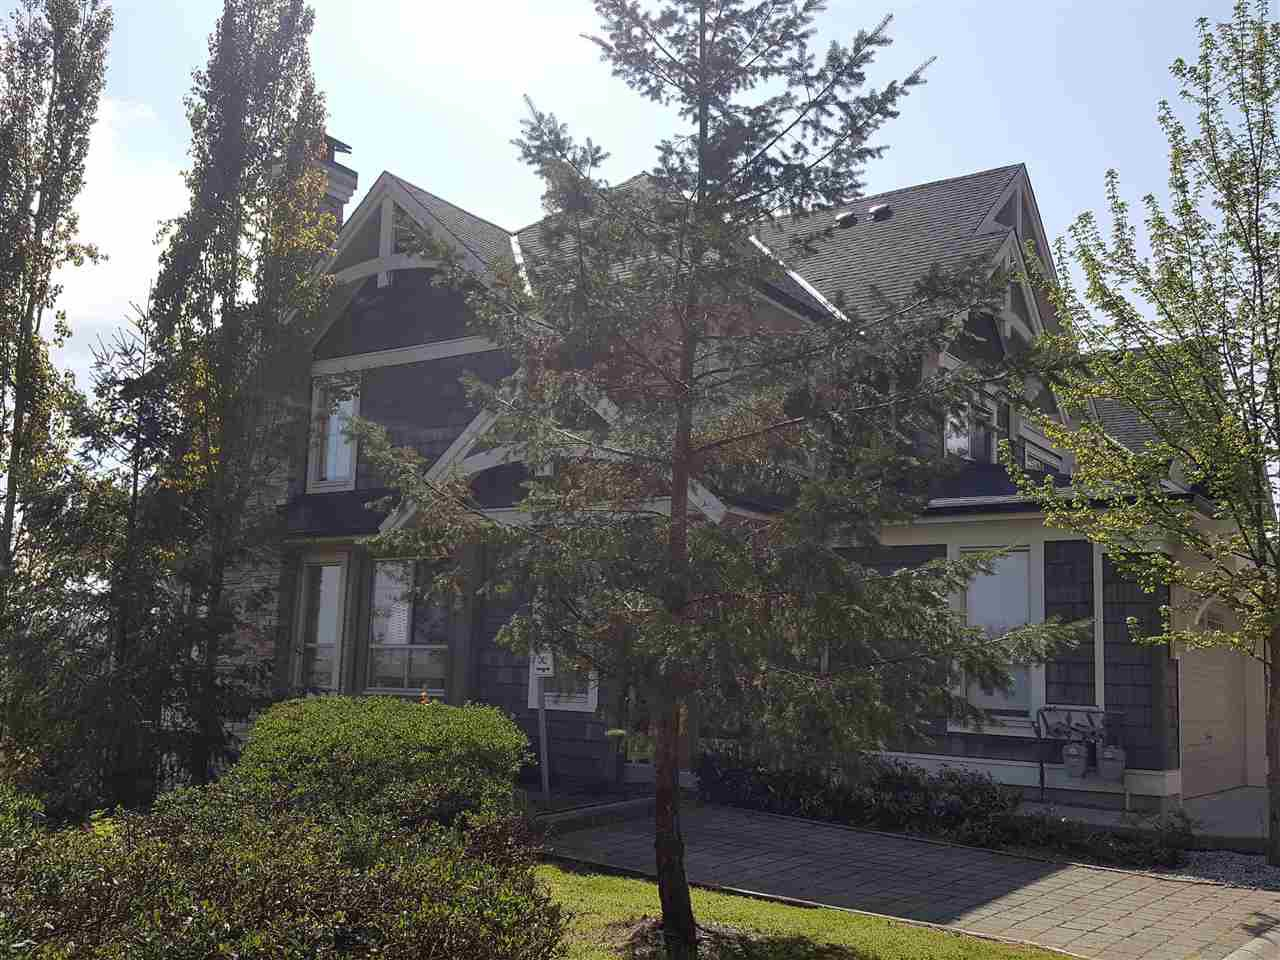 """Main Photo: 75 1357 PURCELL Drive in Coquitlam: Westwood Plateau Townhouse for sale in """"WHITETAIL LANE"""" : MLS®# R2263236"""